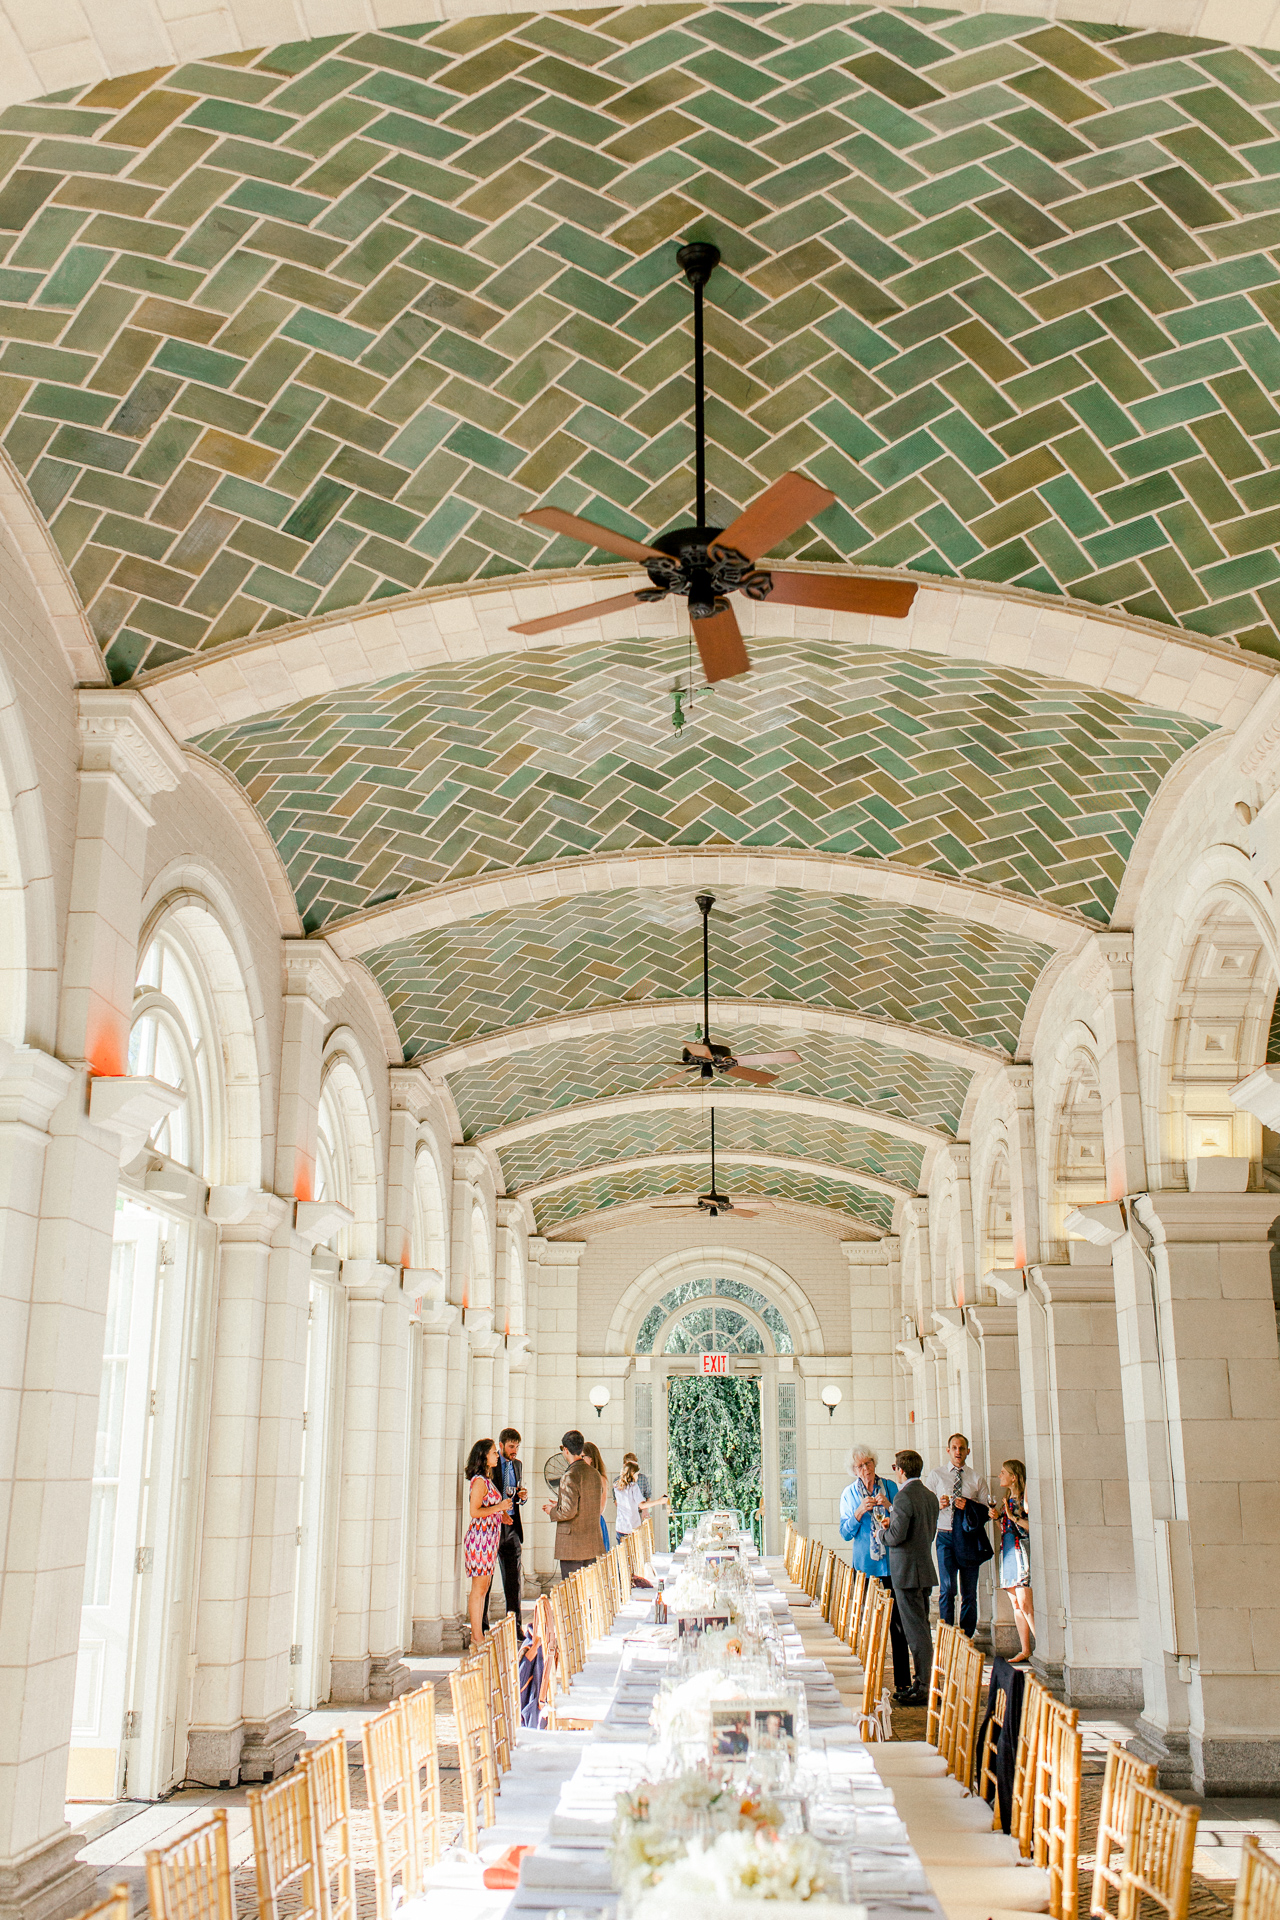 Gorgeous venue with lovely teal and warm tones tile ceilings, very unique for a location in NYC.